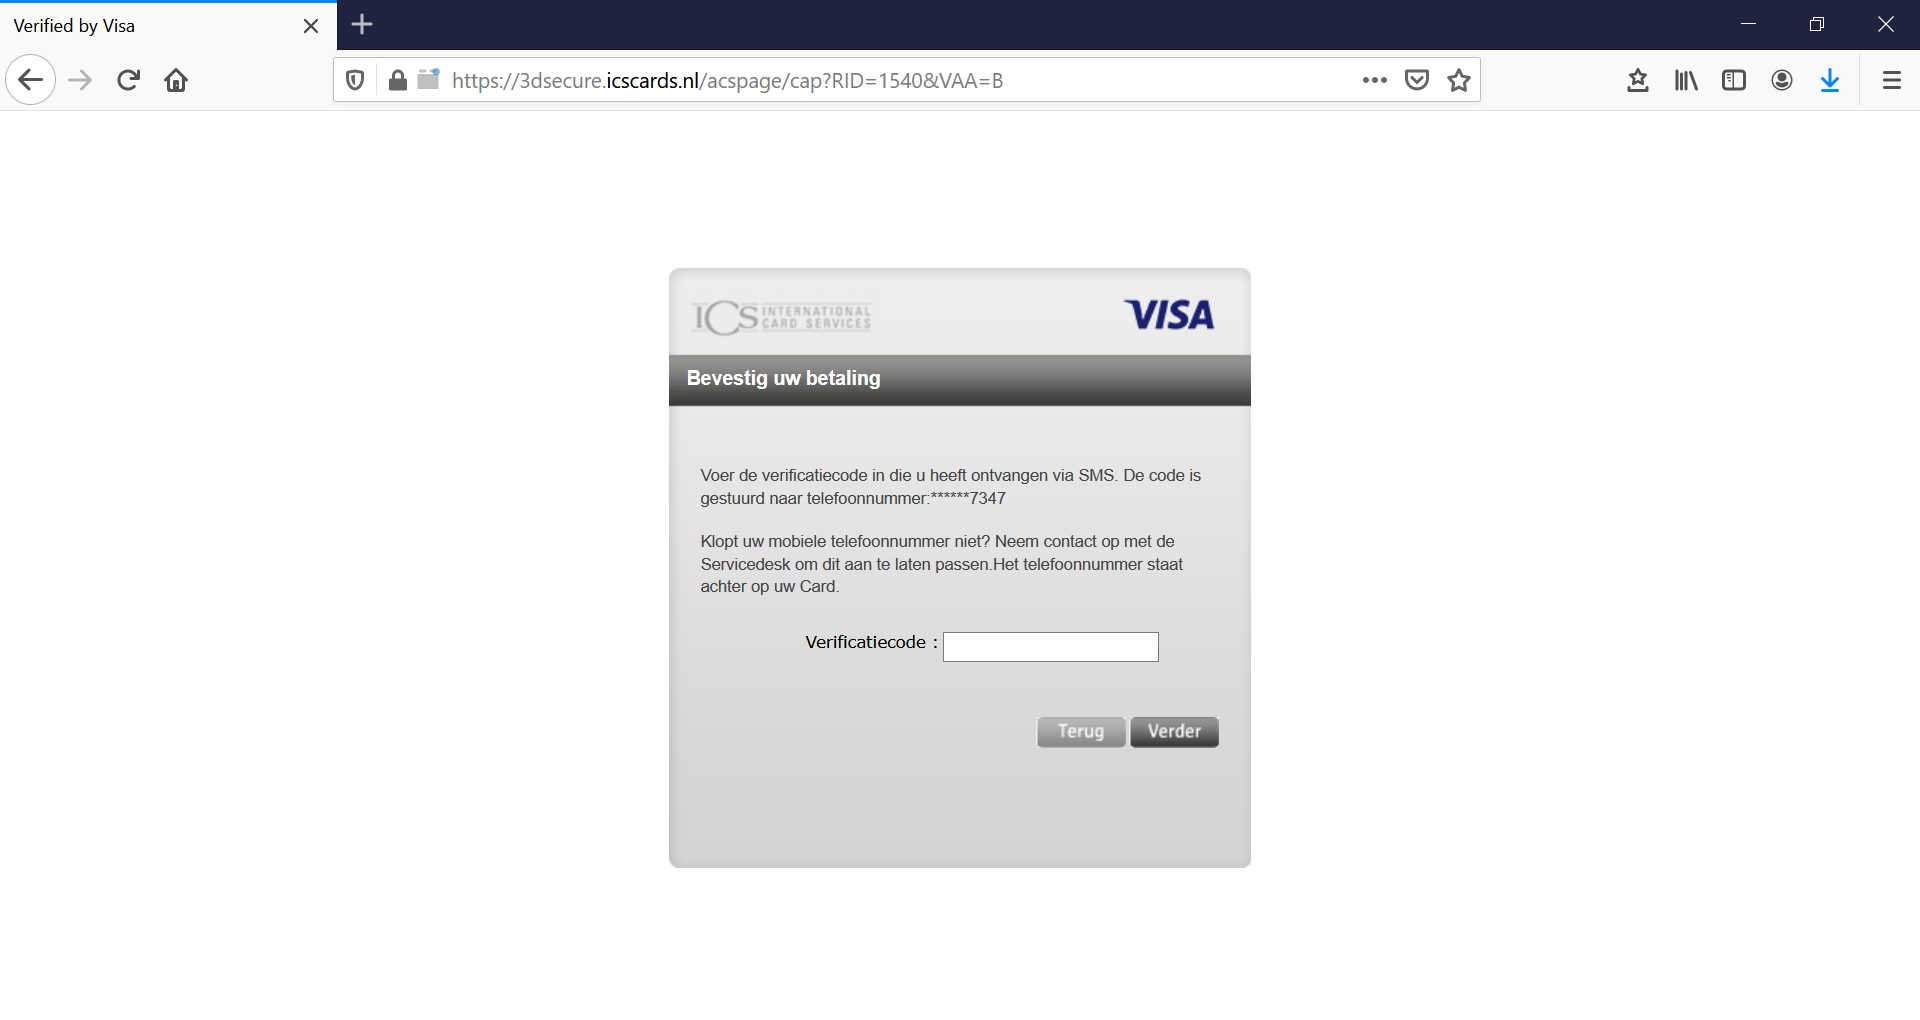 test payment screen shot 6